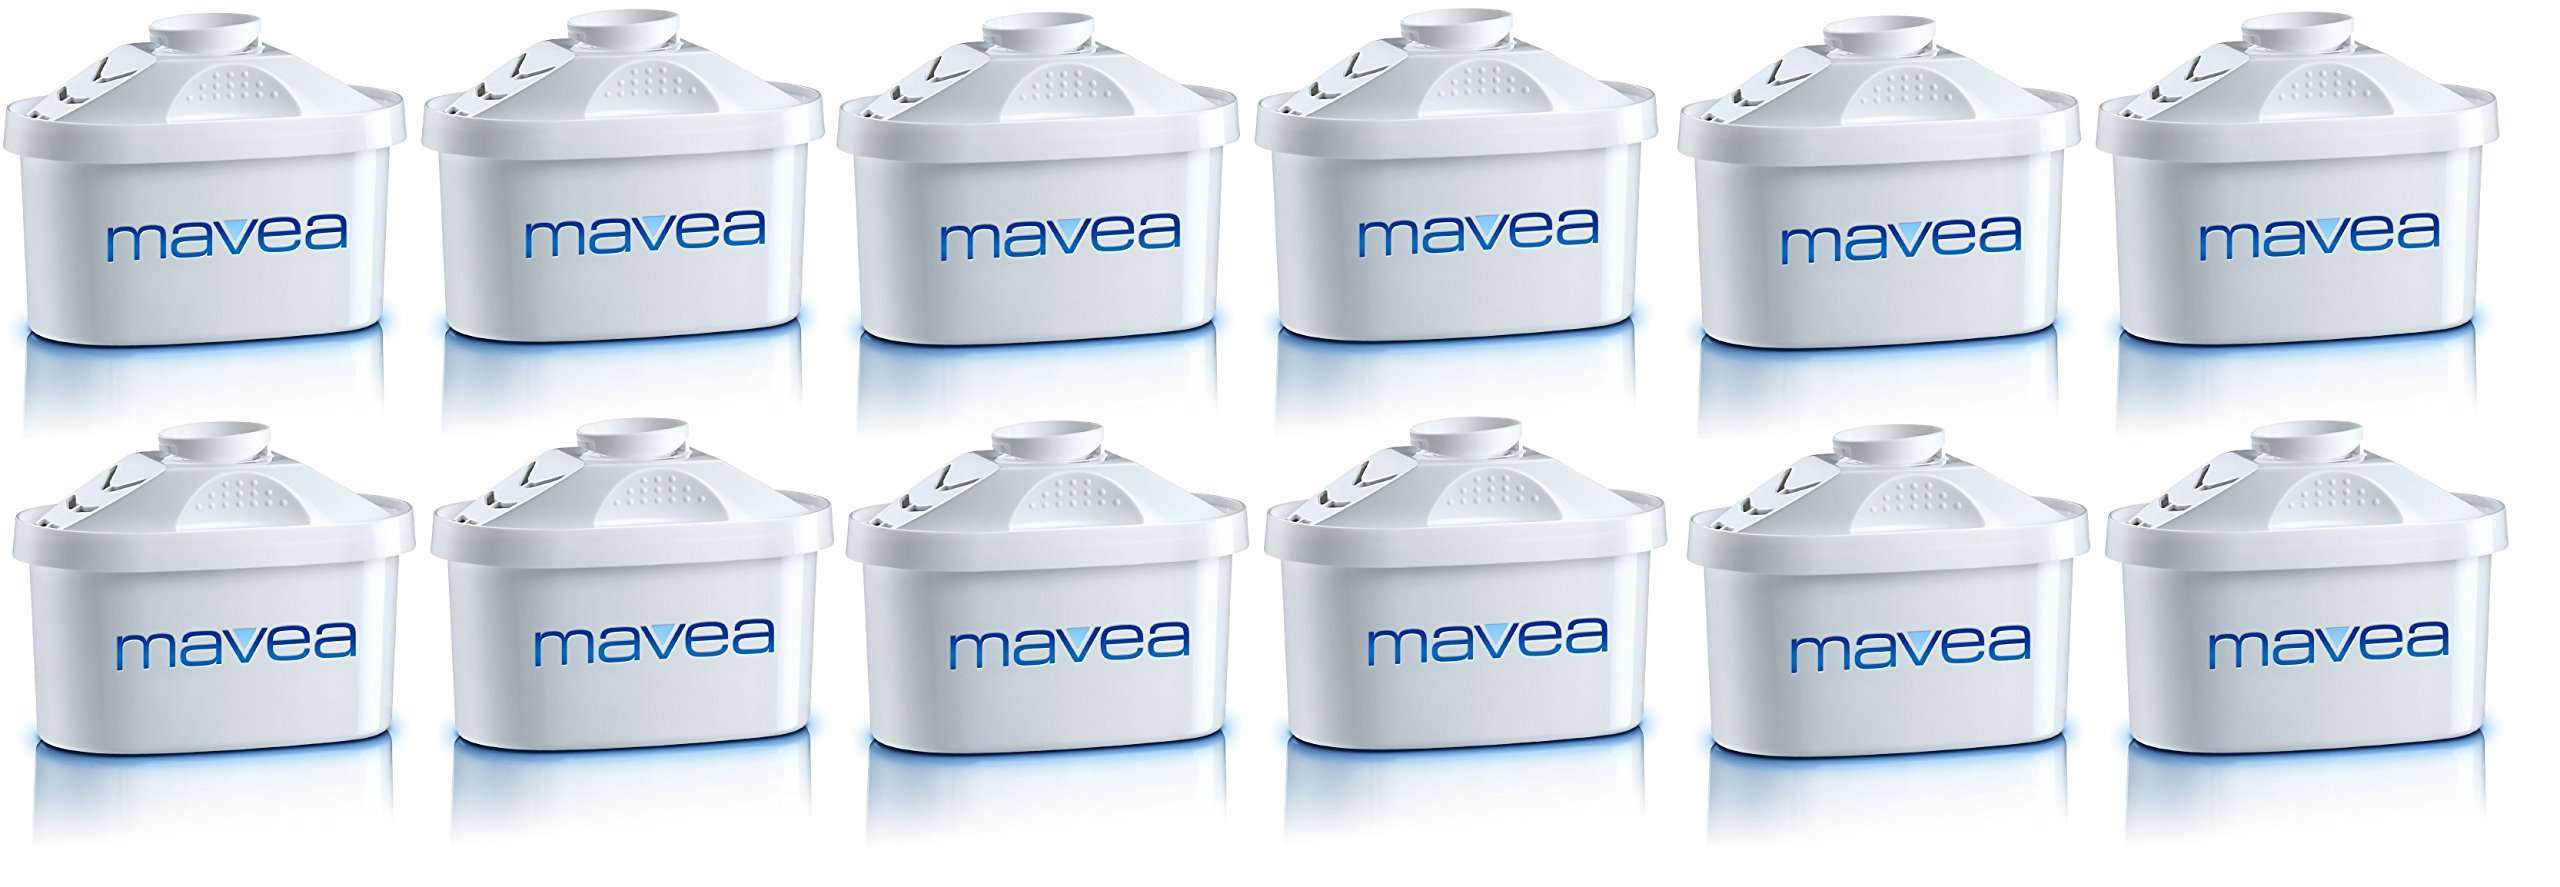 MAVEA 105731 Maxtra 12-Pack Replacement Filter for MAVEA Water Filtration Pitcher by Mavea